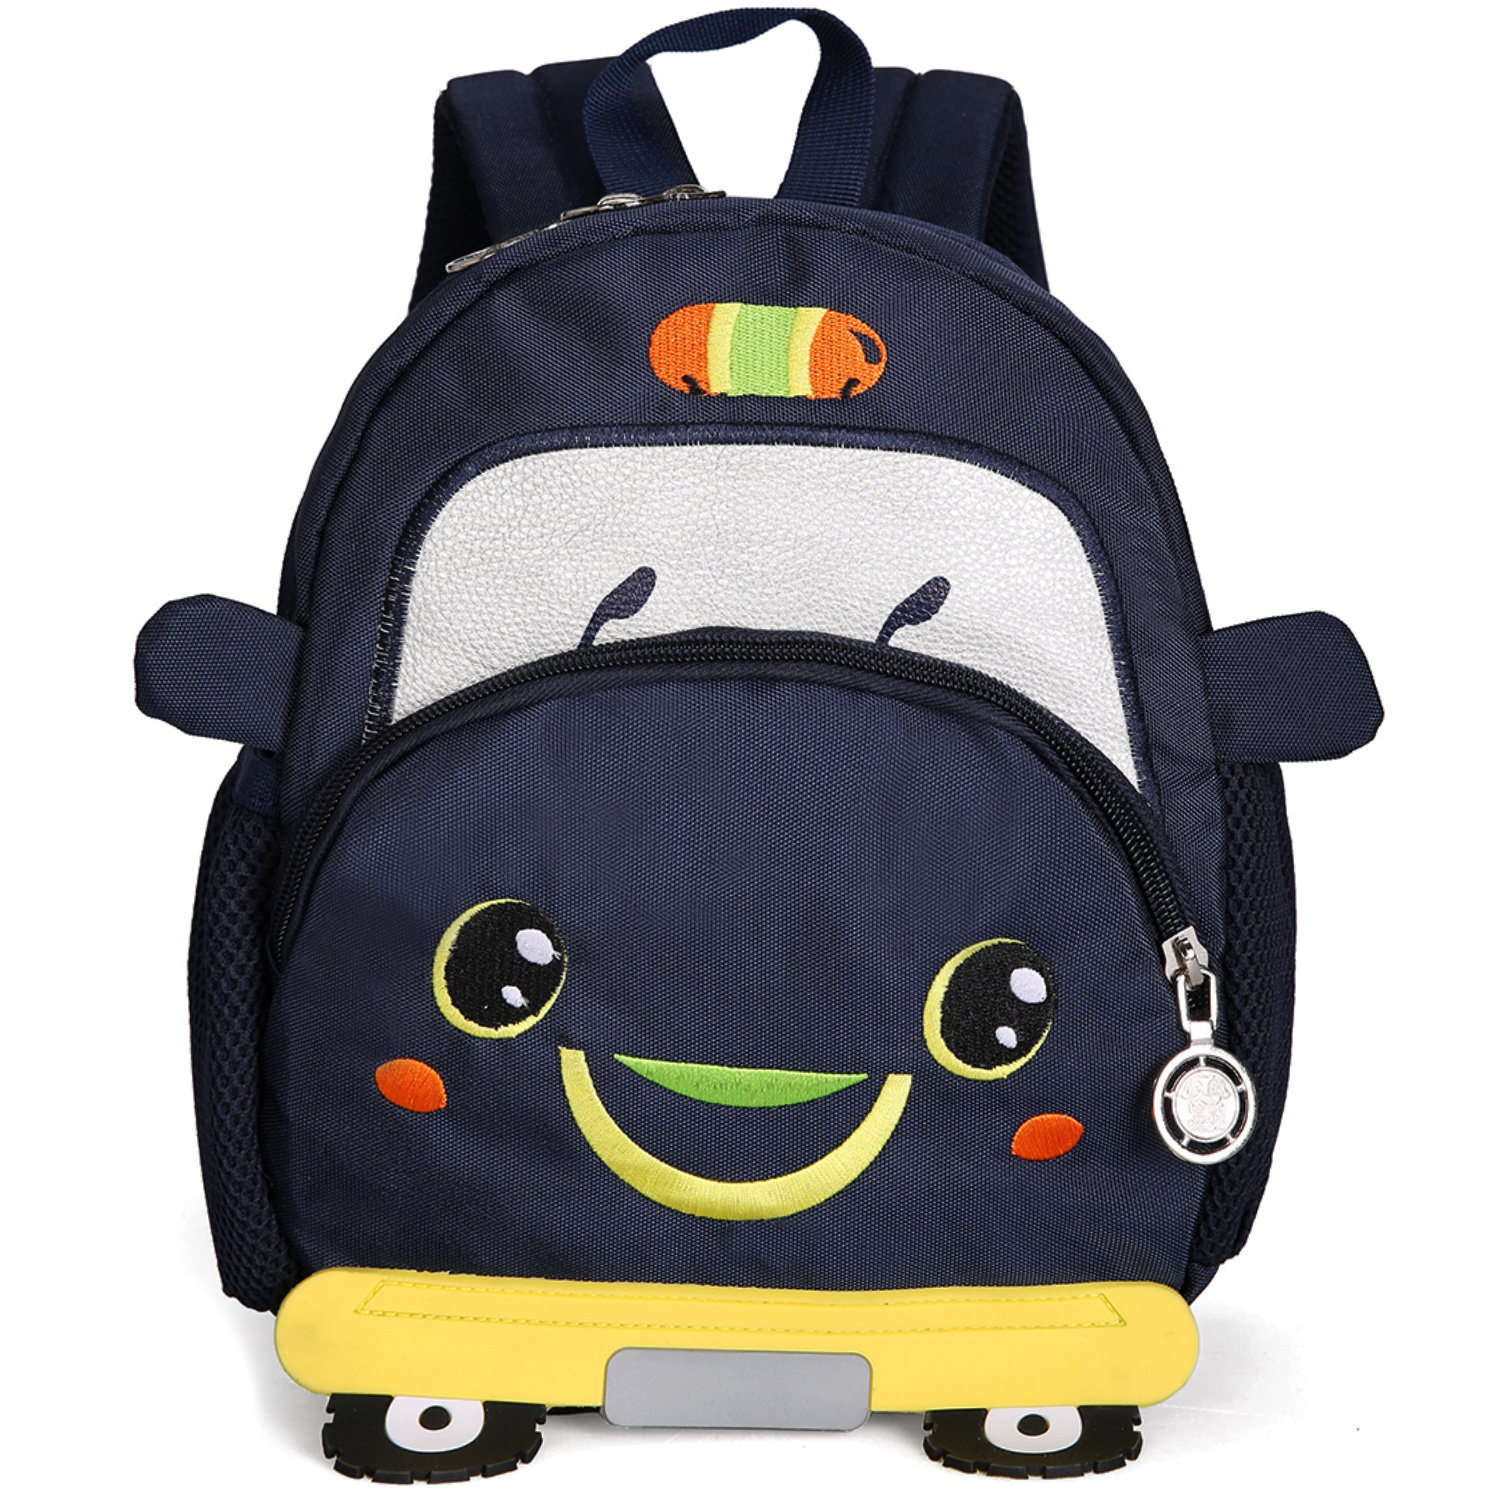 Litthing Children School Backpack Car Cartoon Mini Plush Backpack For Kindergarten Kids Gift Student Lovely School Bag 2019